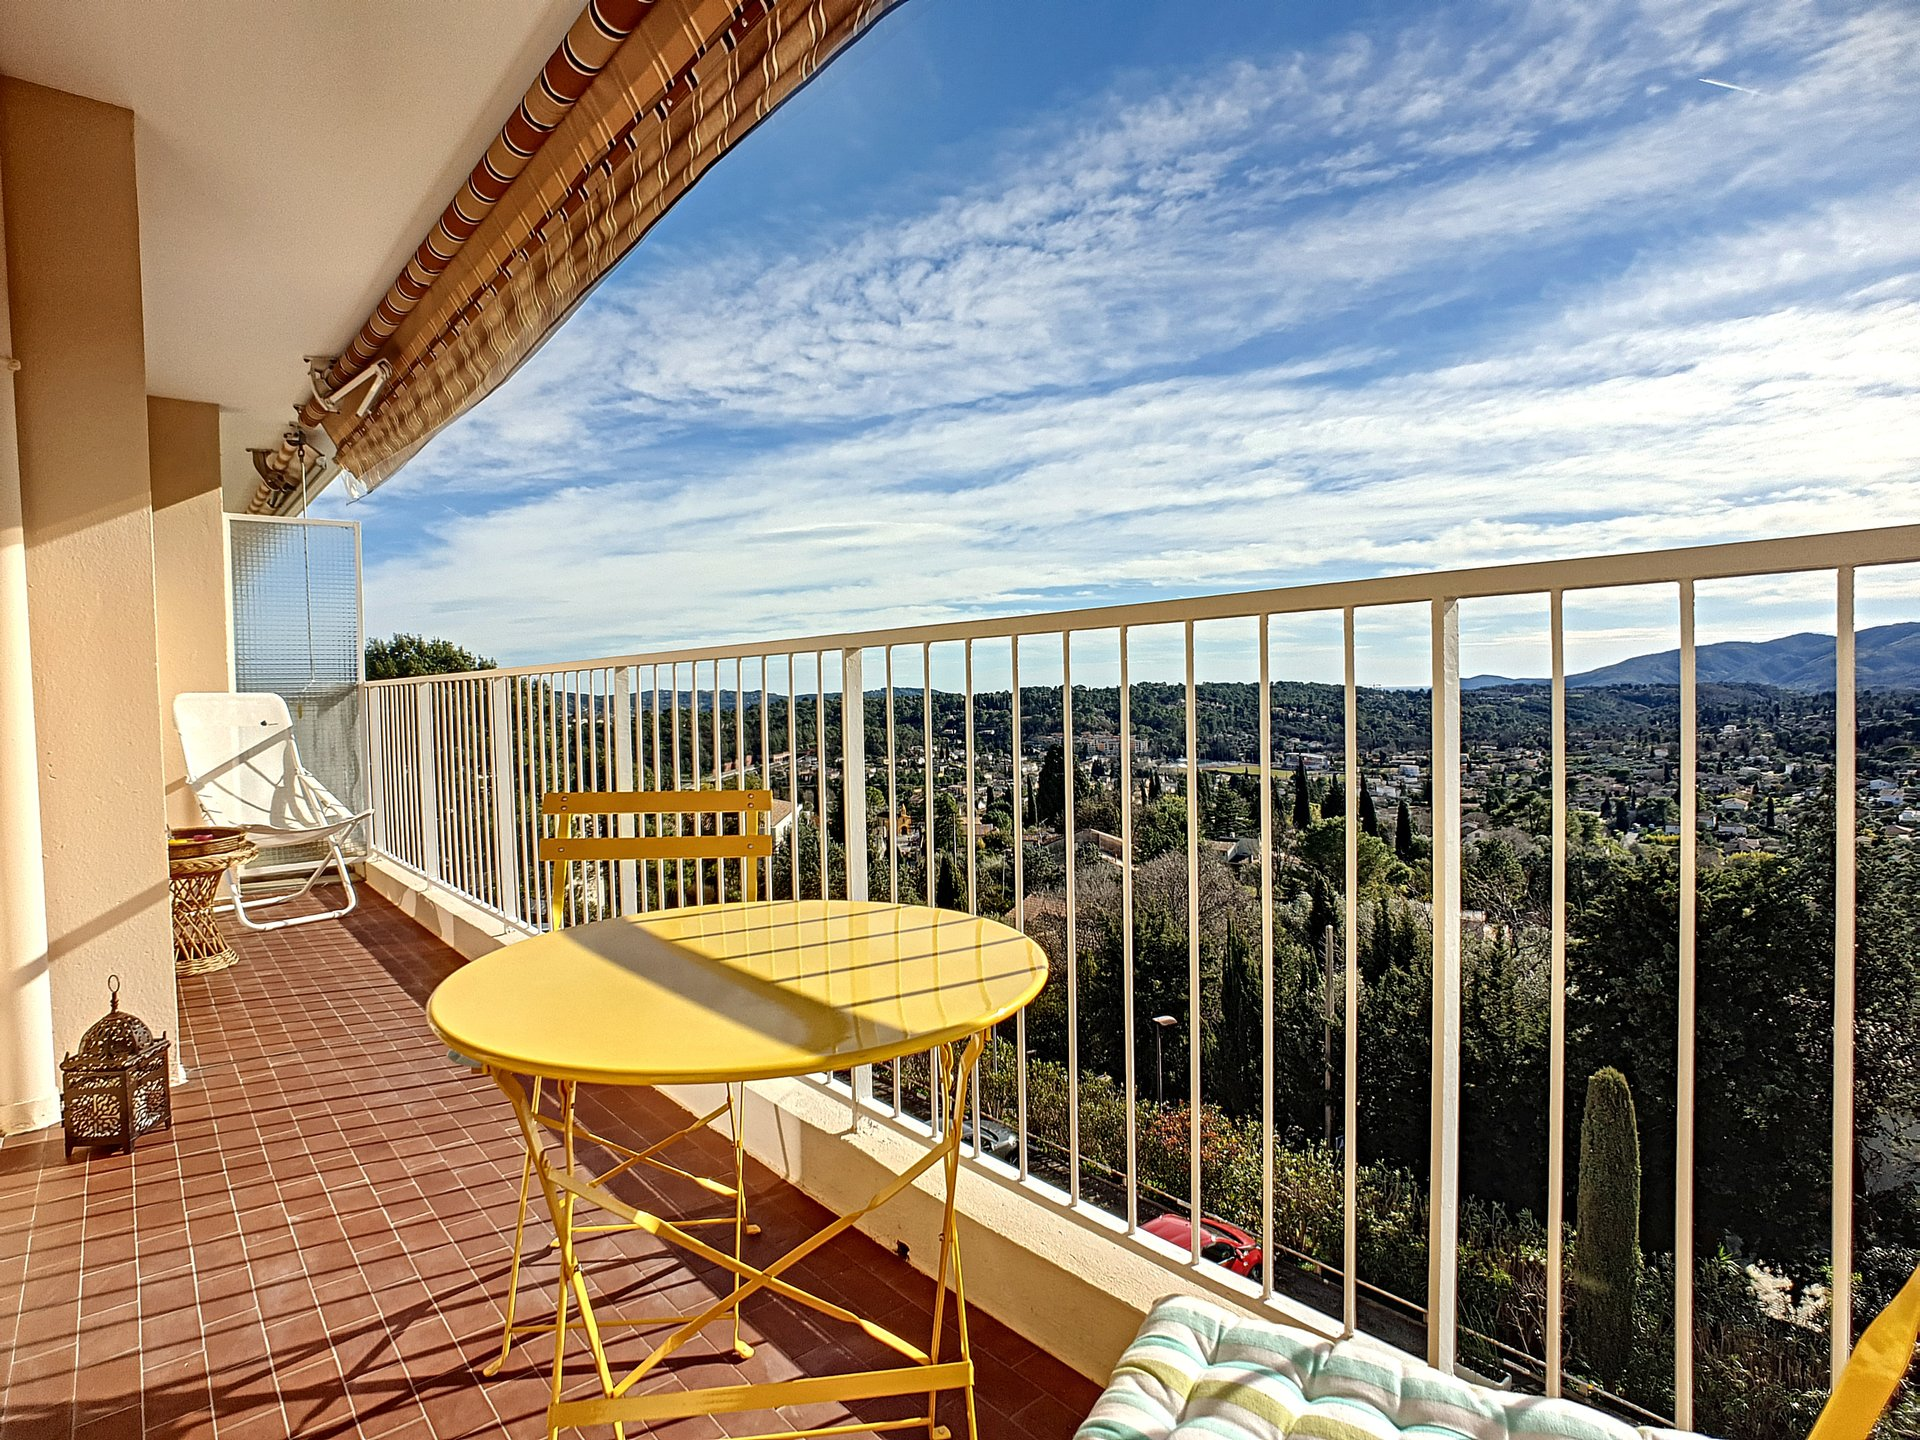 Vente bel appartement 2P à Grasse, vue panoramique